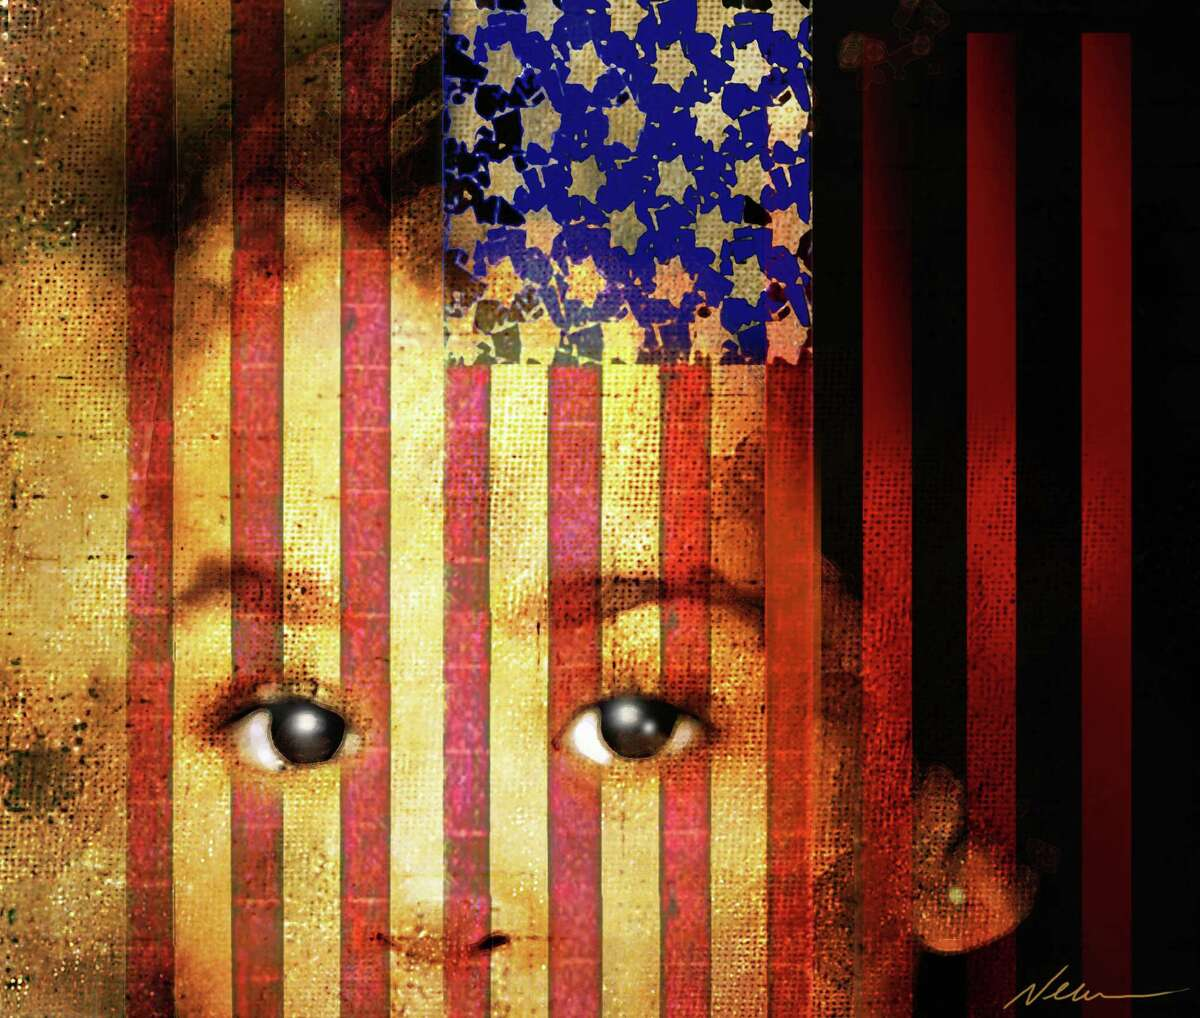 Violence and youth 300 dpi Rick Nease color illustration of child peering out from the bars of American flag. Can be used with stories on the